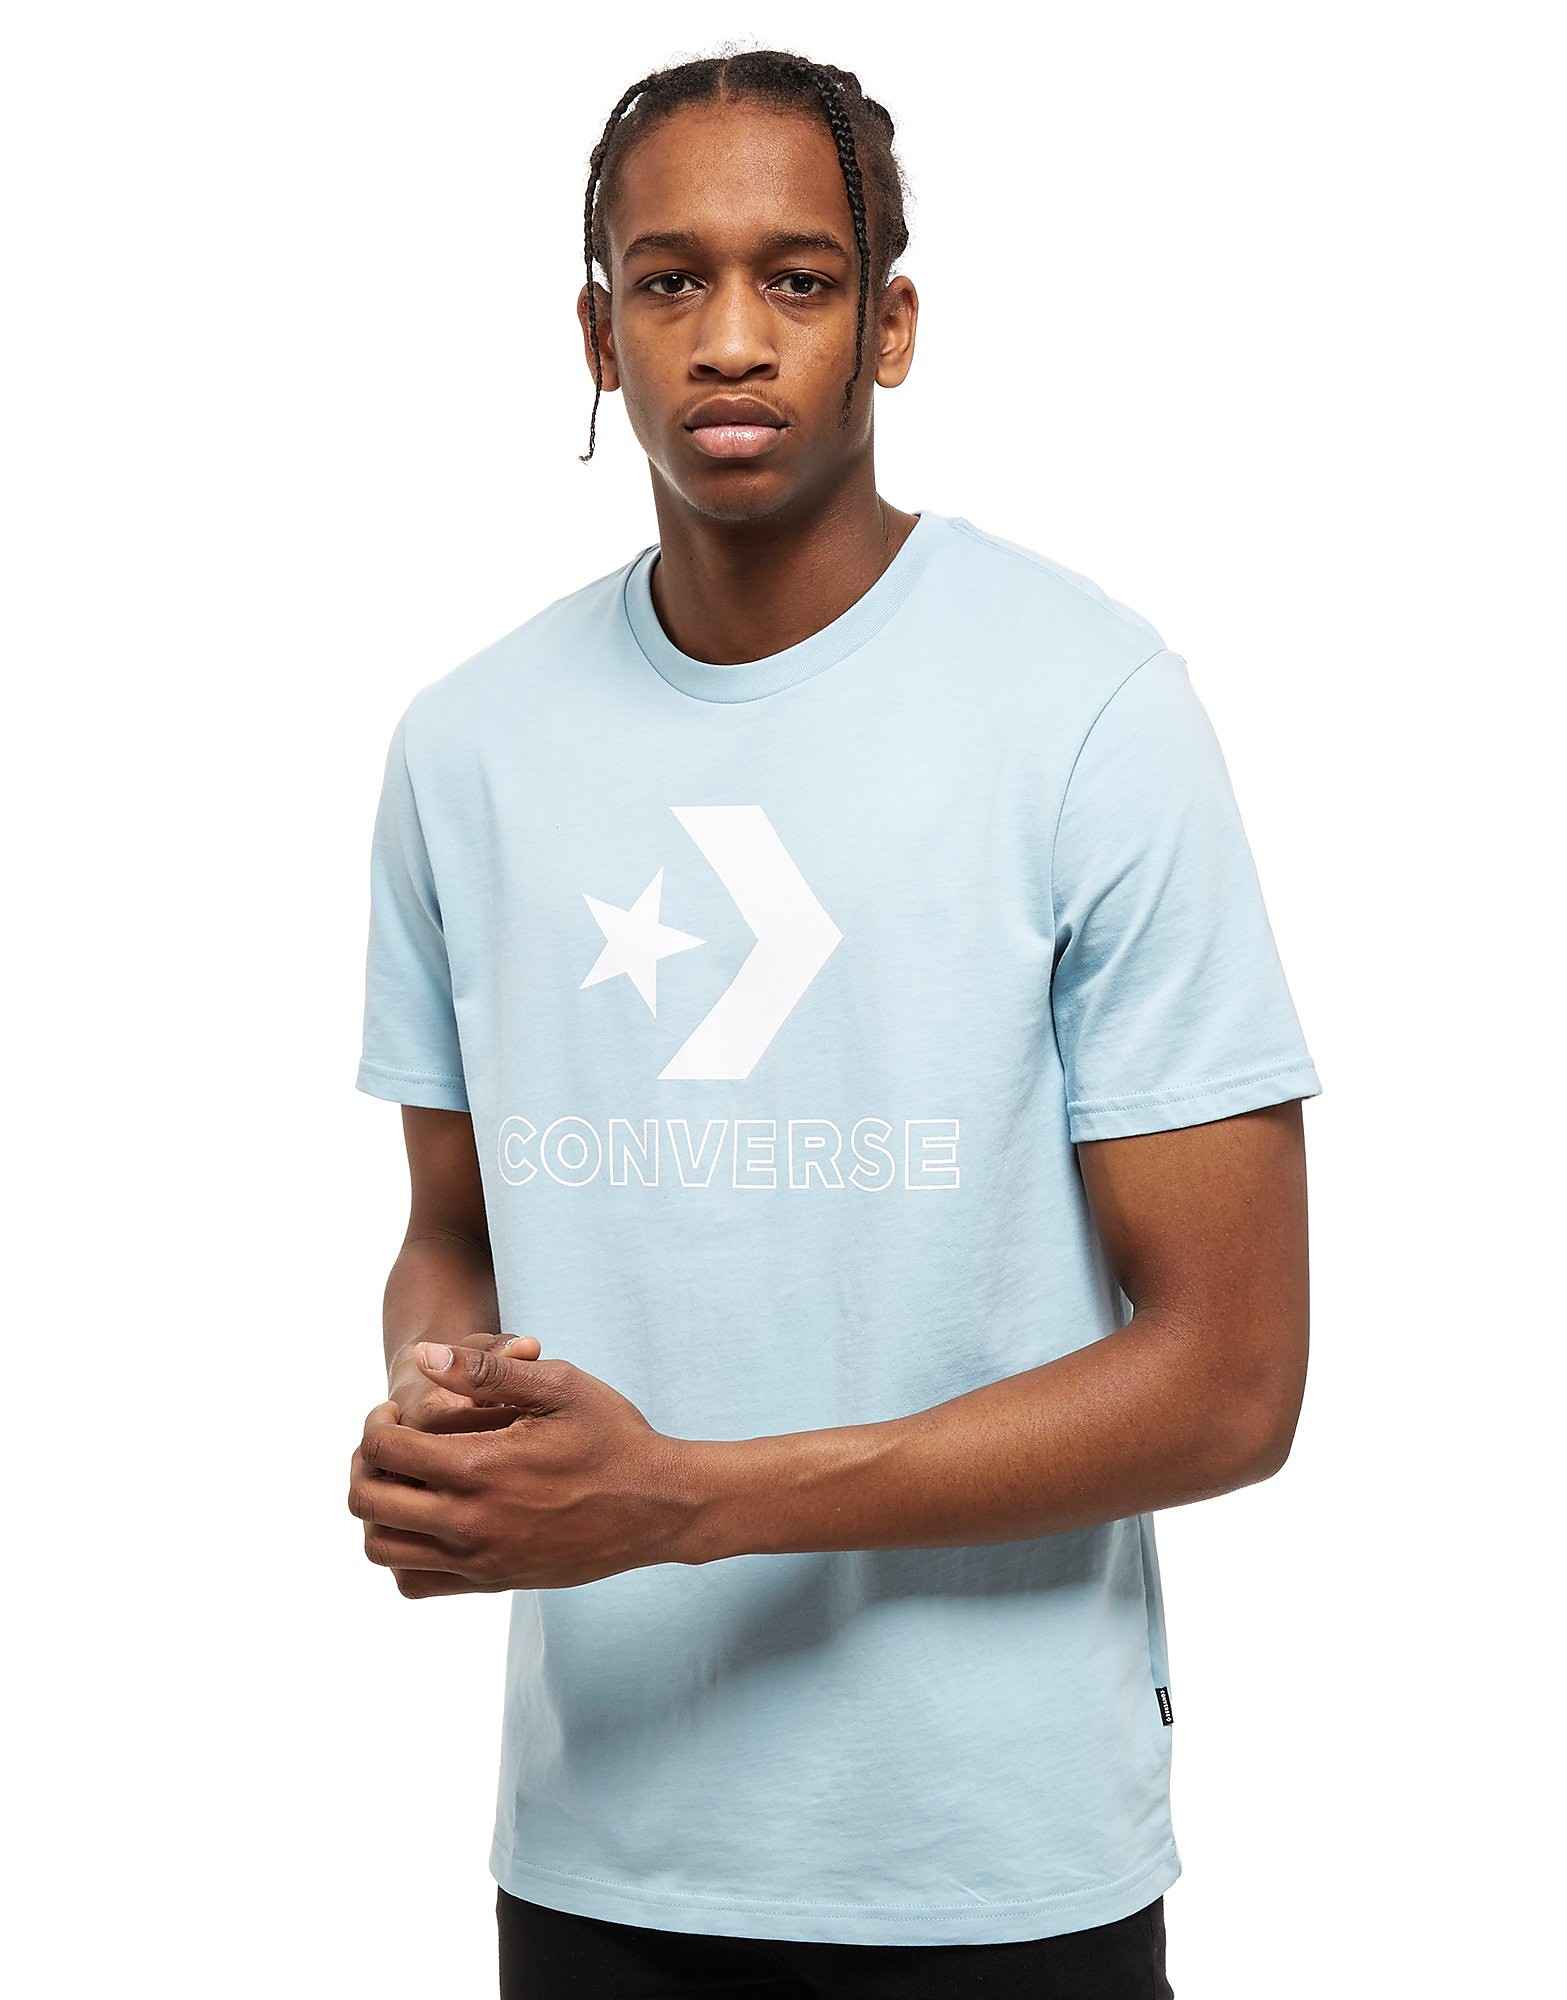 Converse Big Star Chevron T-Shirt Blau-Weiß